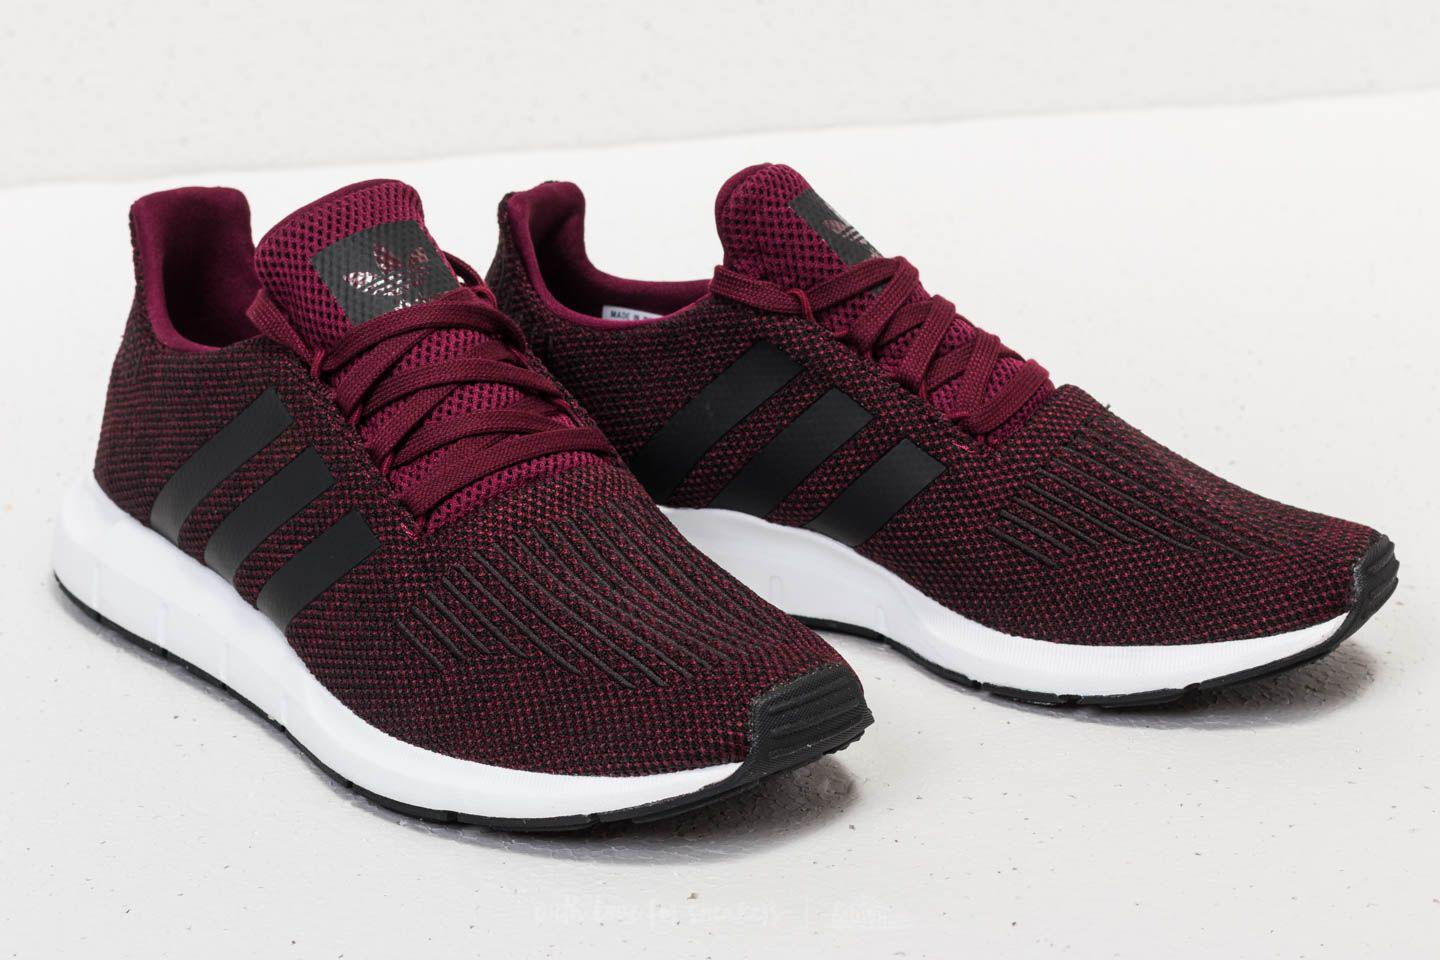 a525d31b4 Adidas Originals - Multicolor Adidas Swift Run Maroon  Core Black  Ftw  White for Men